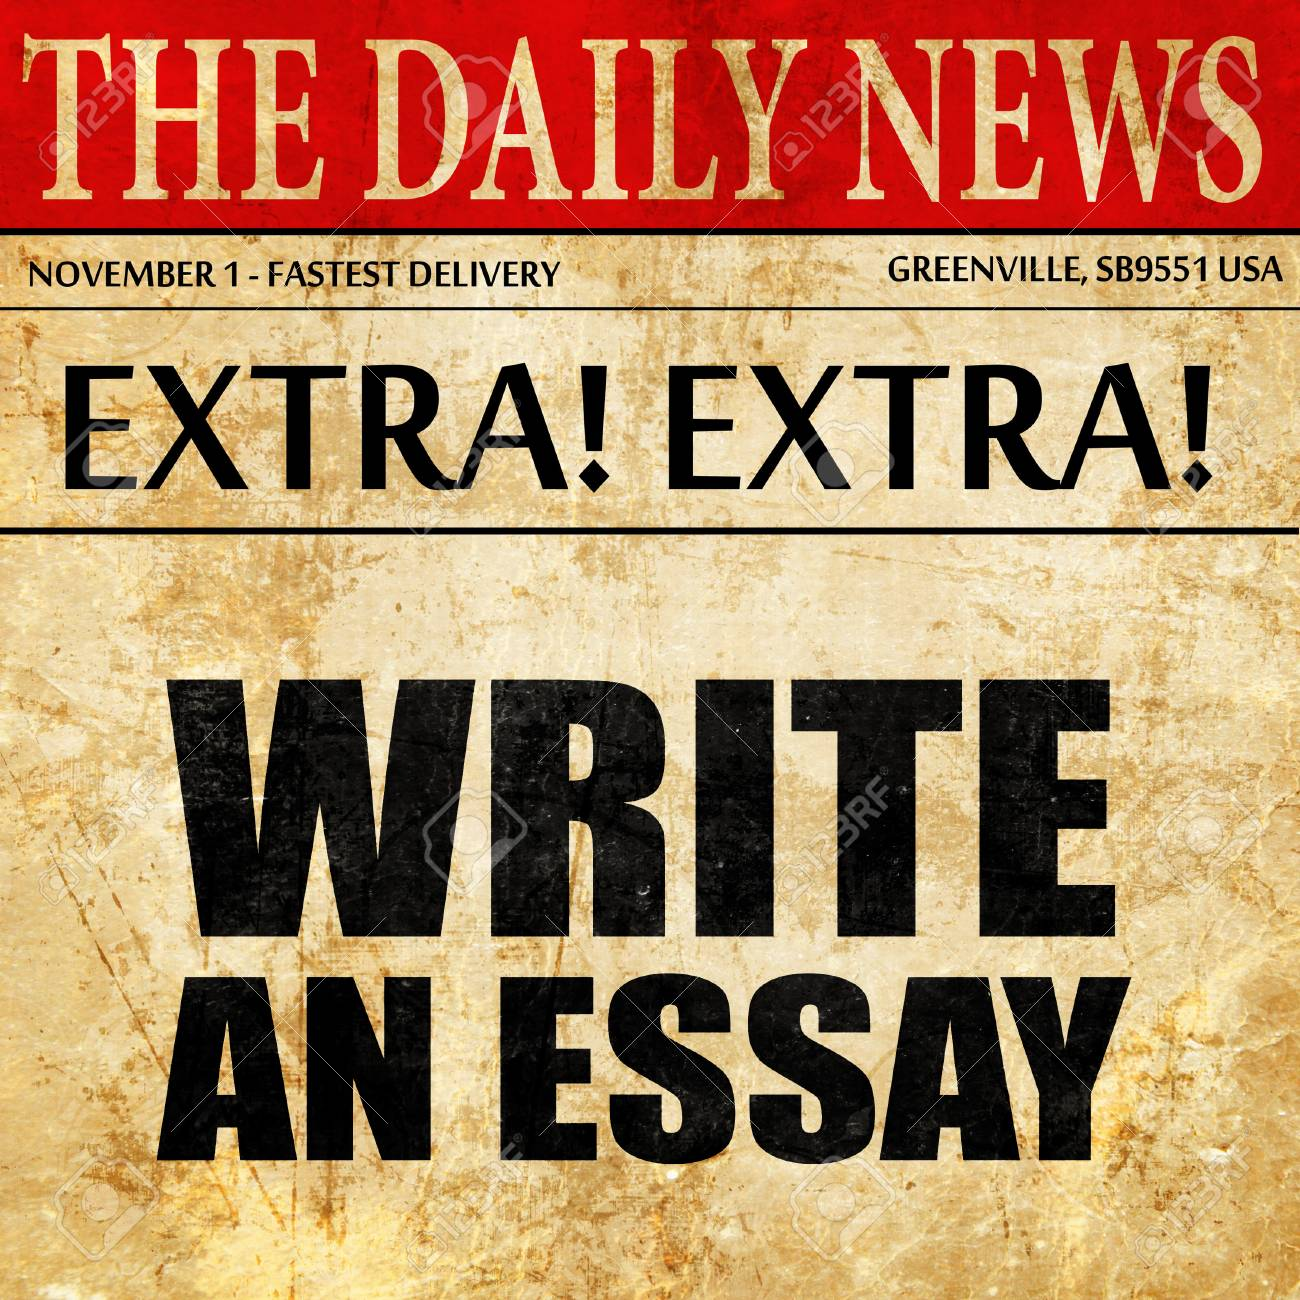 write an essay newspaper article text stock photo picture and  write an essay newspaper article text stock photo 70394433